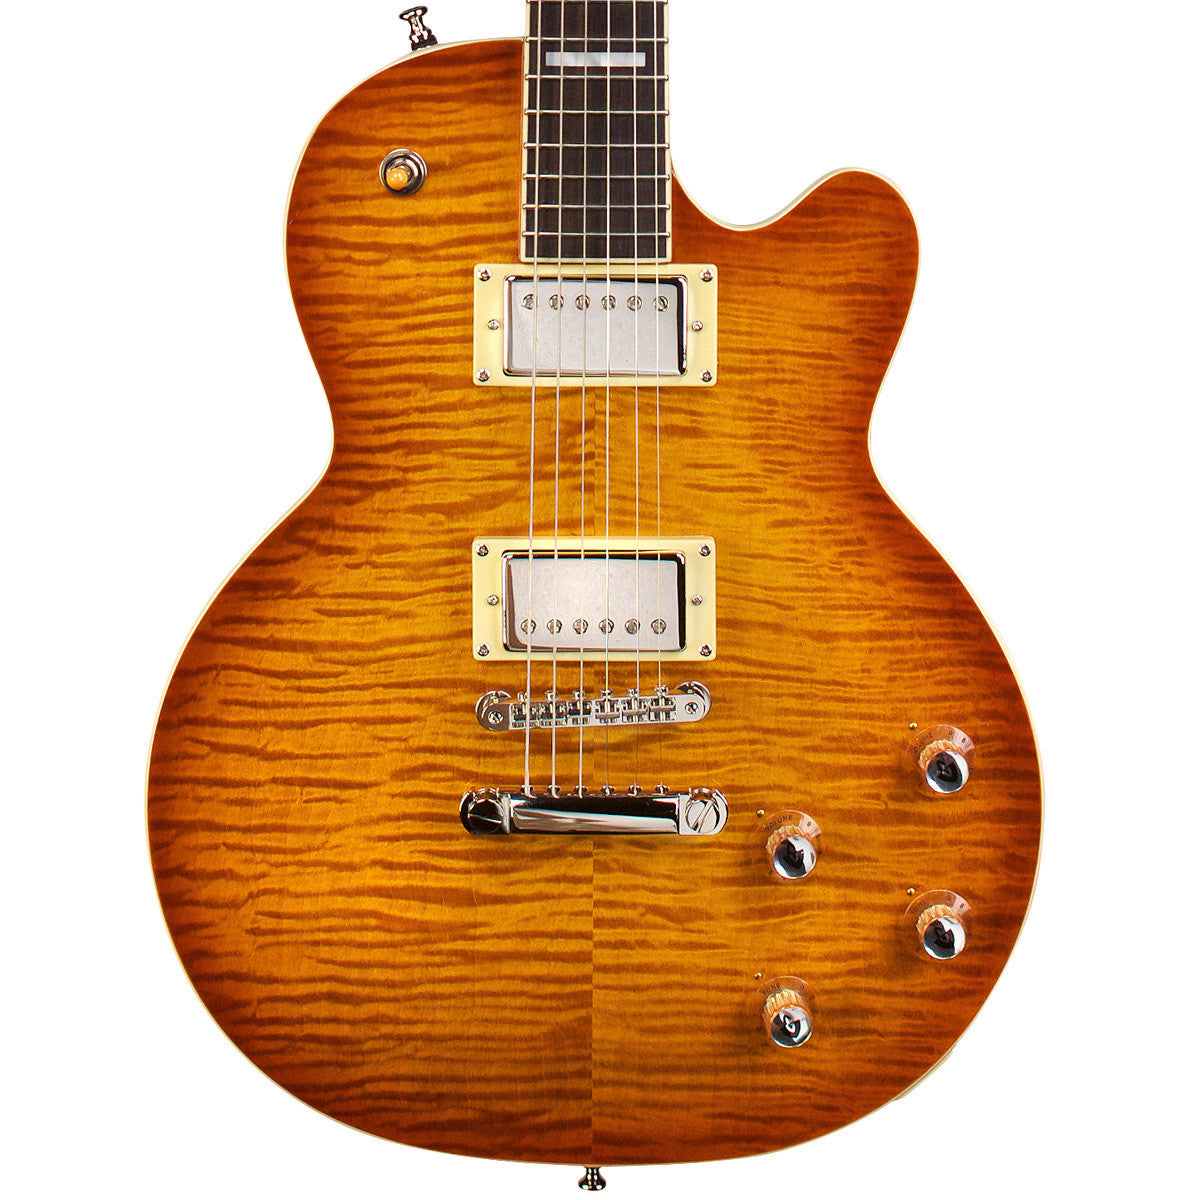 Guild Bluesbird - Iced Tea Burst - Newark St. Collection - Vintage Guitar Boutique - 1